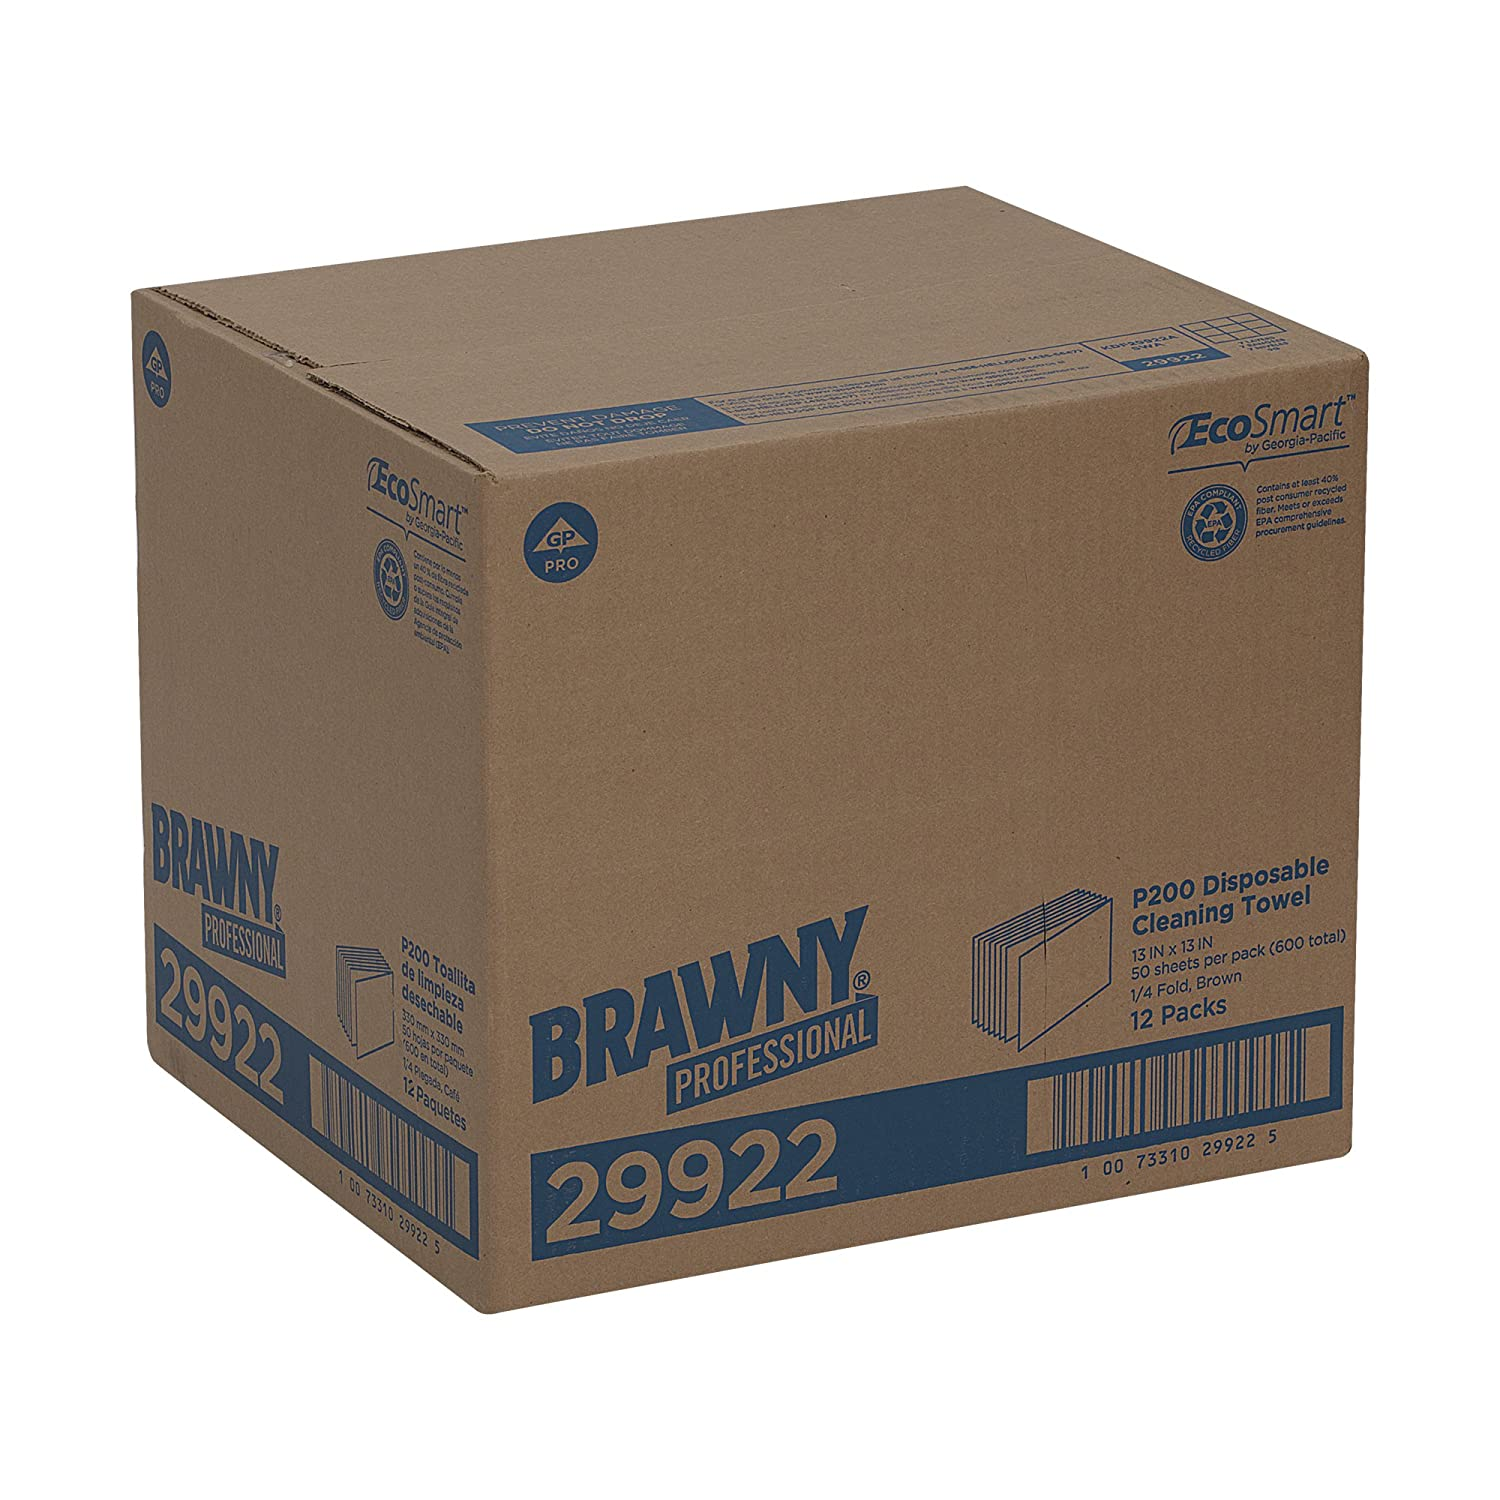 GP Brawny Professional P200 Disposable Cleaning Towel, 1/4-Fold, Brown: Science Lab Disposable Wipes: Amazon.com: Industrial & Scientific